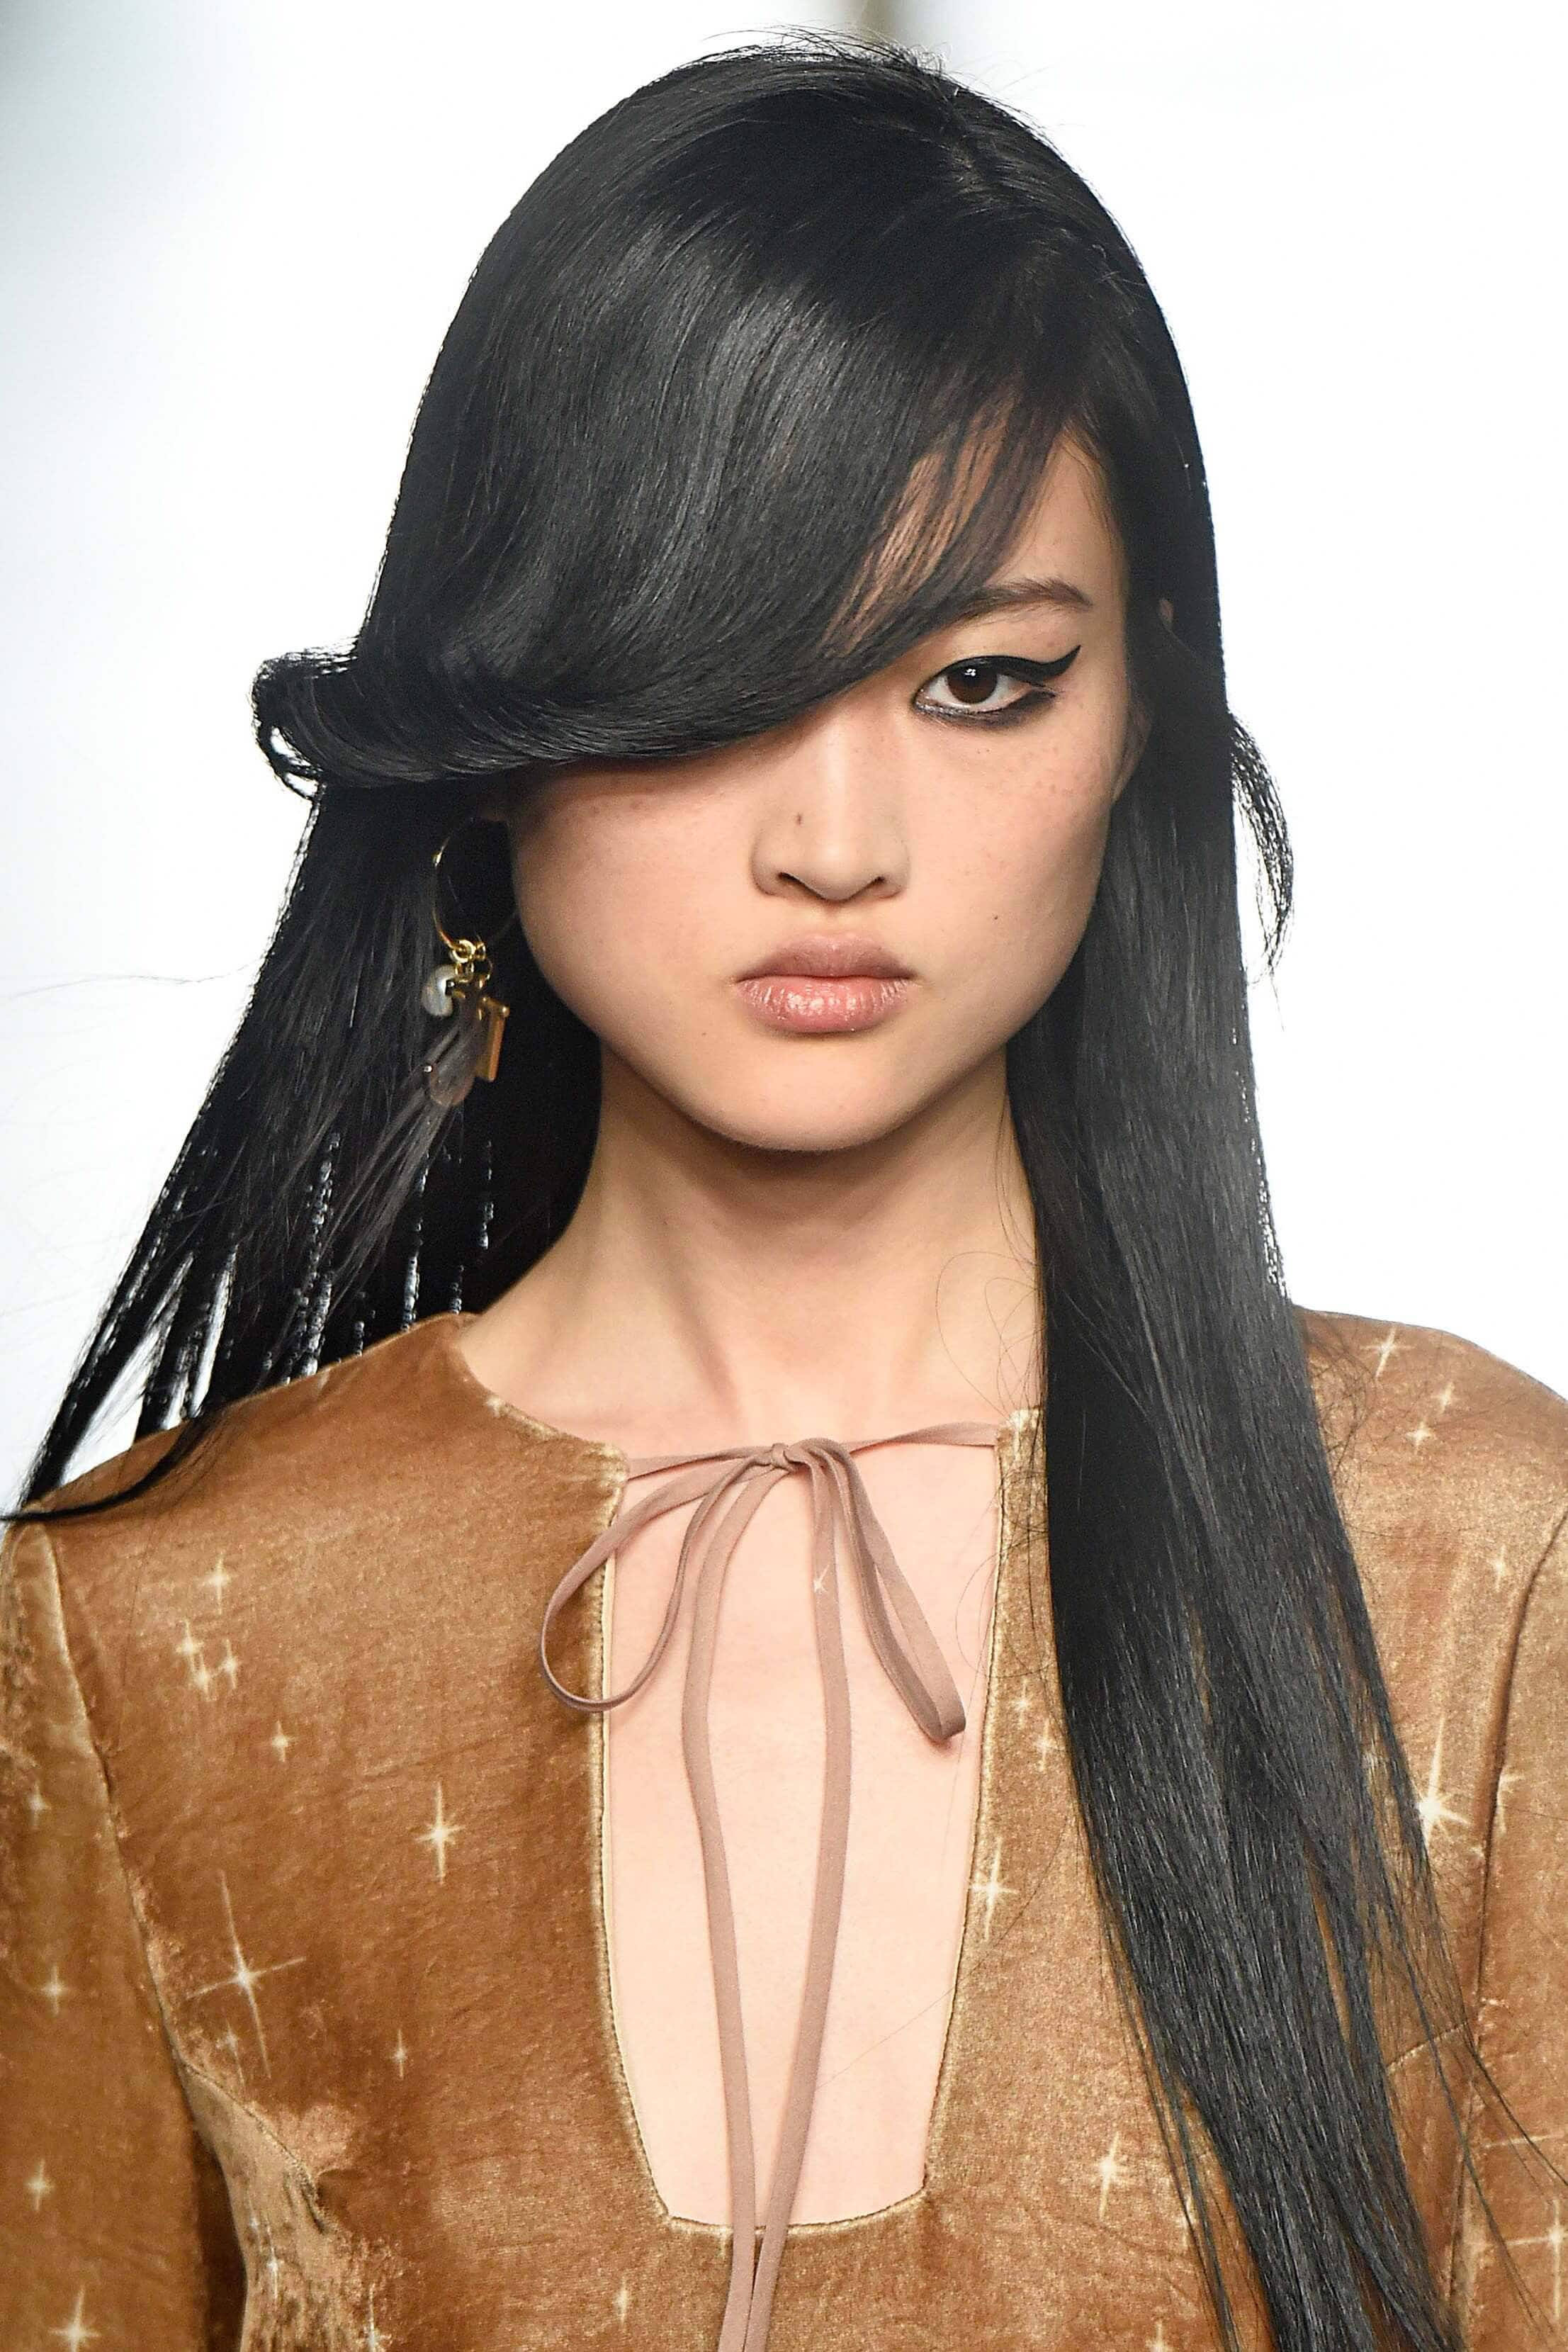 Asian woman with long hair and side swept bangs: hairstyles for round faces